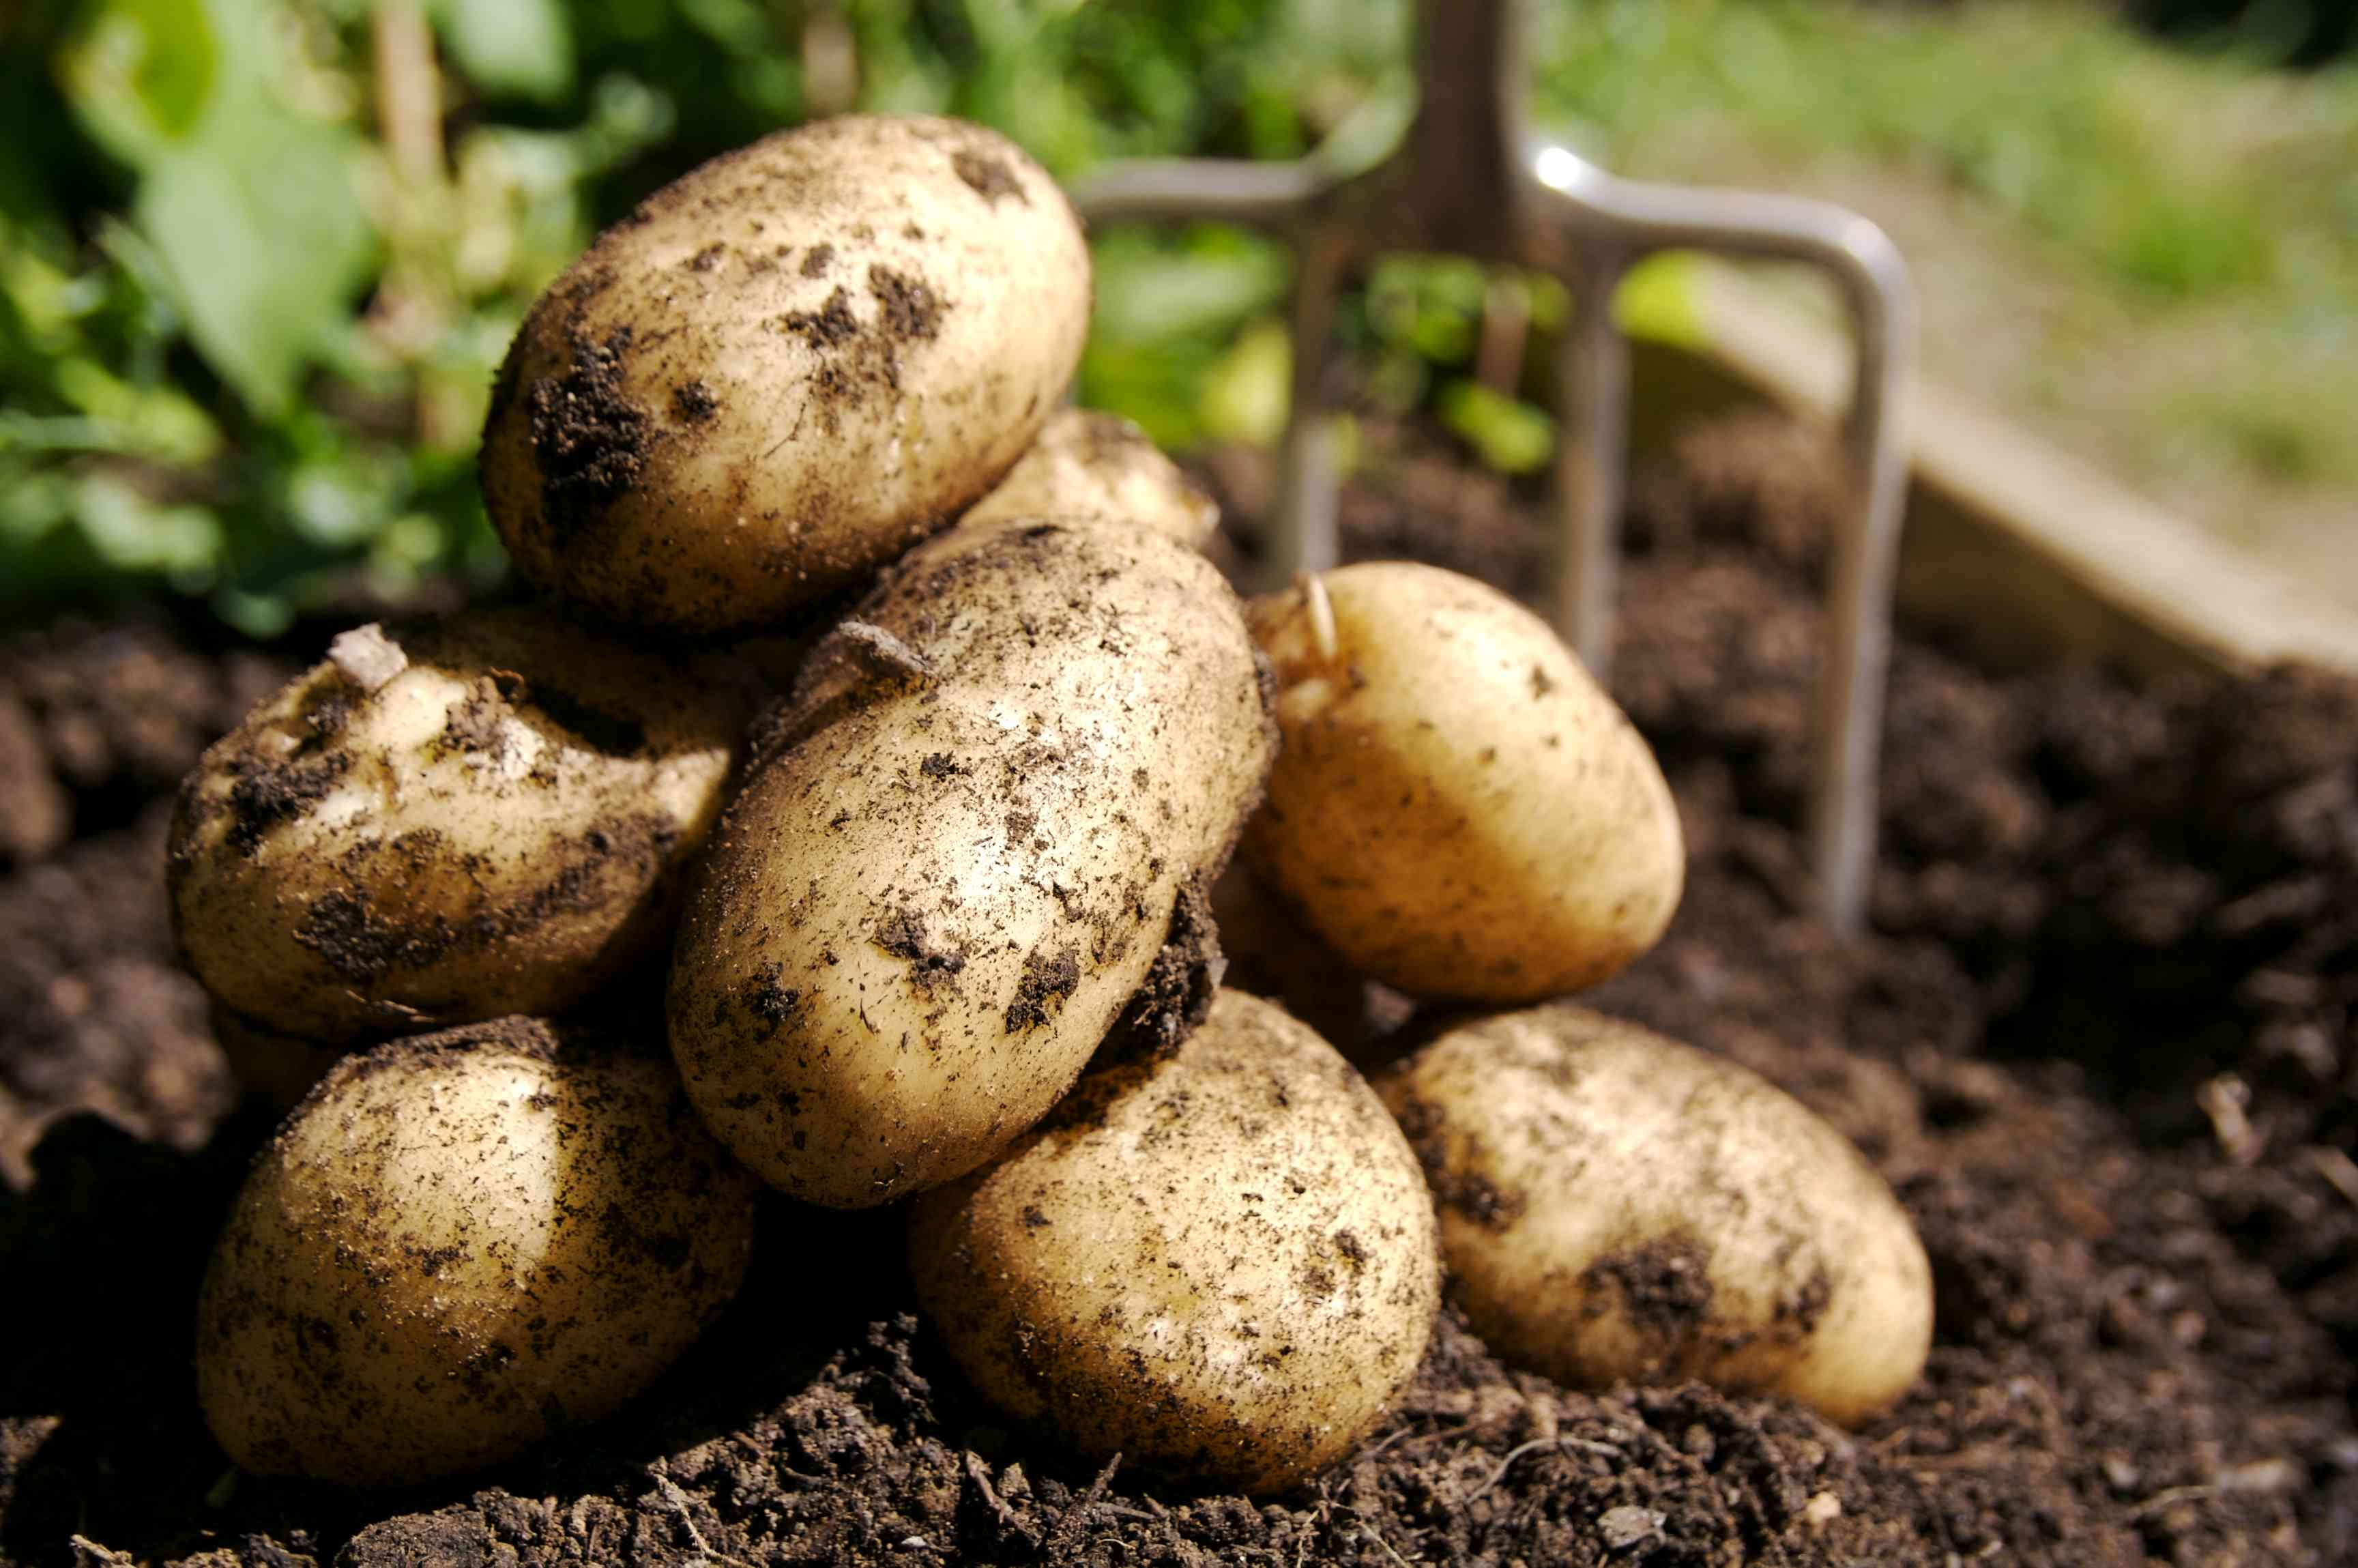 freshly dug white potatoes on soil with pitchfork in background